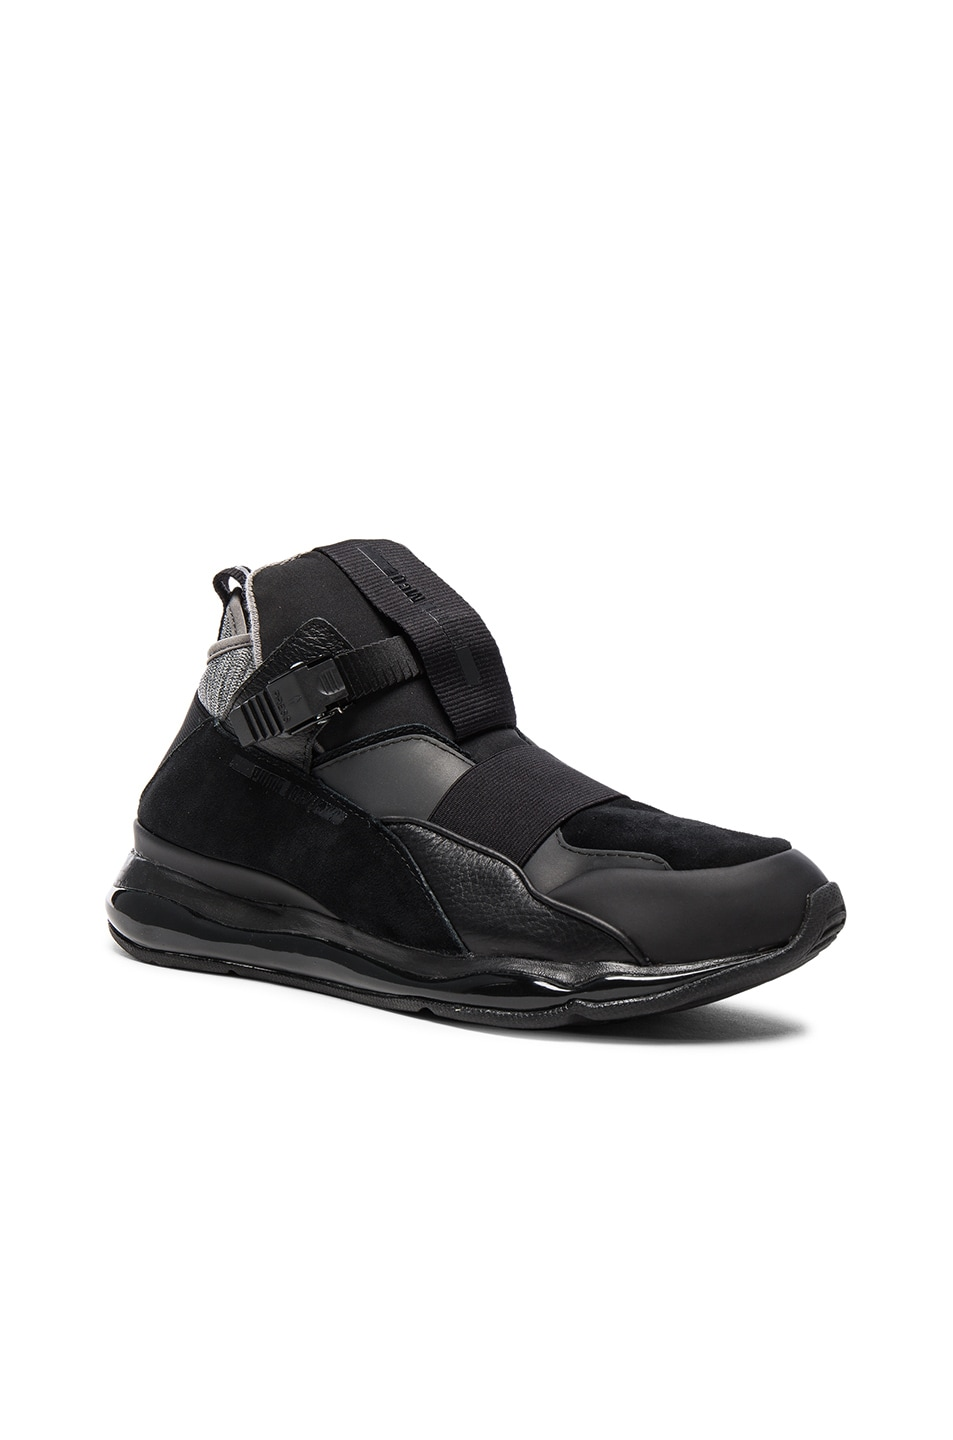 Image 1 of Puma Select x McQ Cell Bubble Runner Mid in Black 6d92b6f67